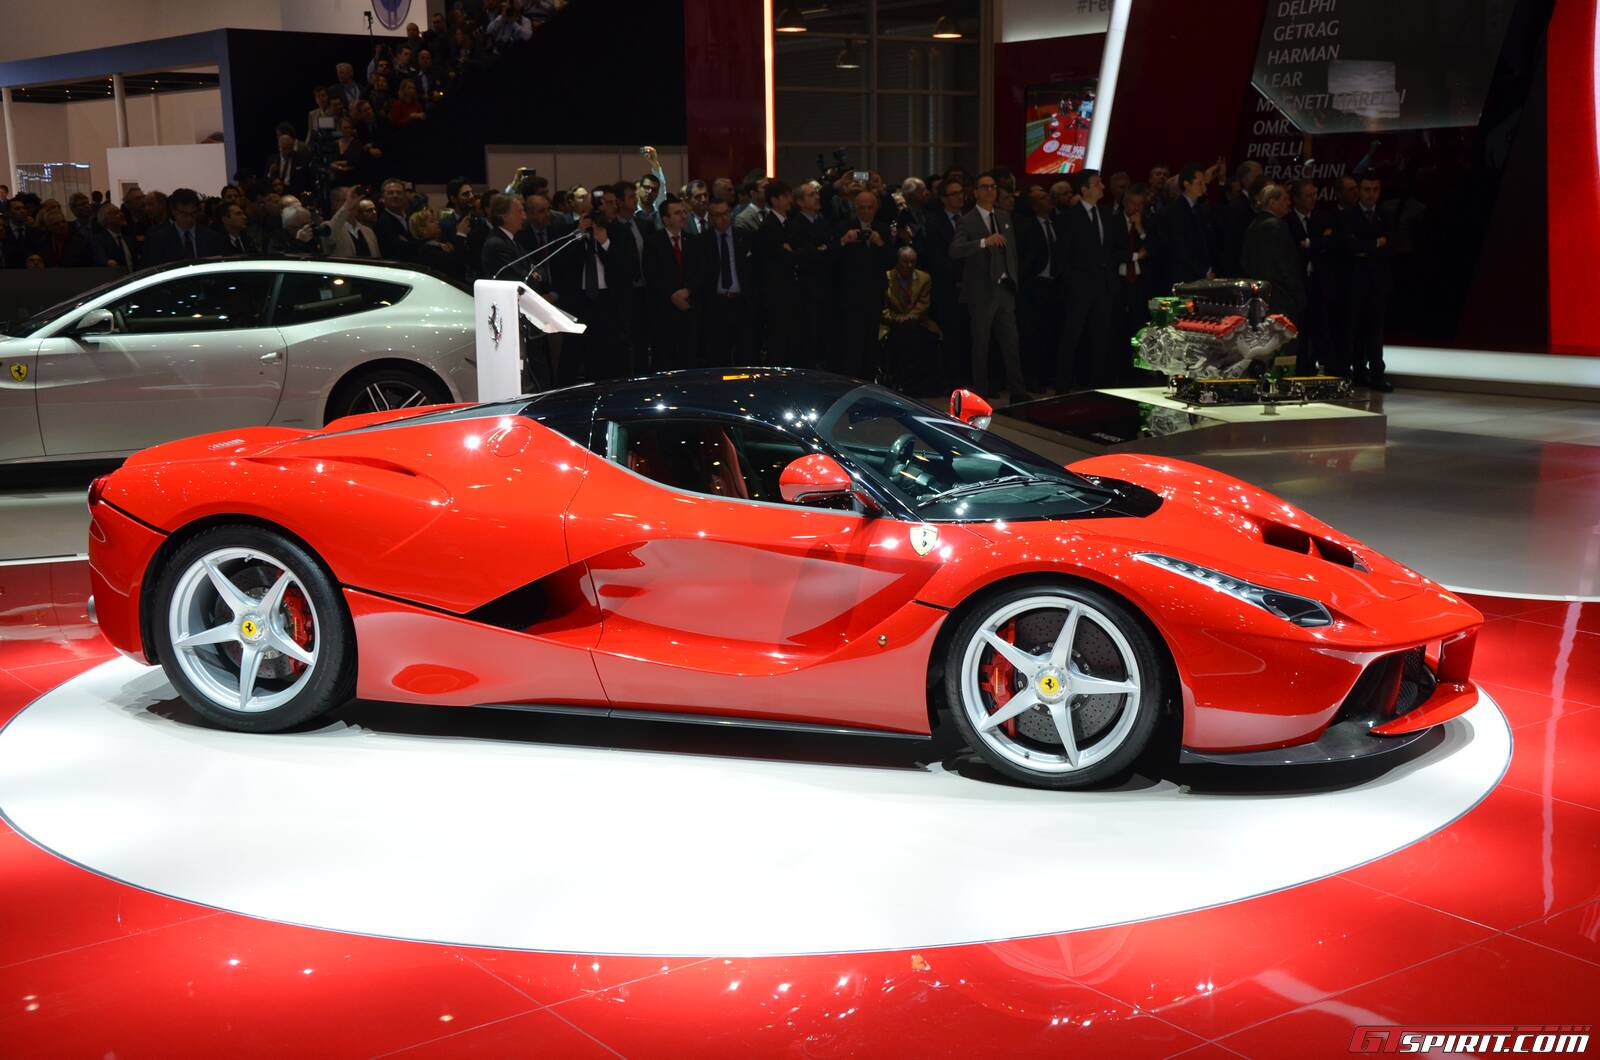 cristiano ronaldo rumoured to be one of 499 laferrari customers gtspirit. Black Bedroom Furniture Sets. Home Design Ideas